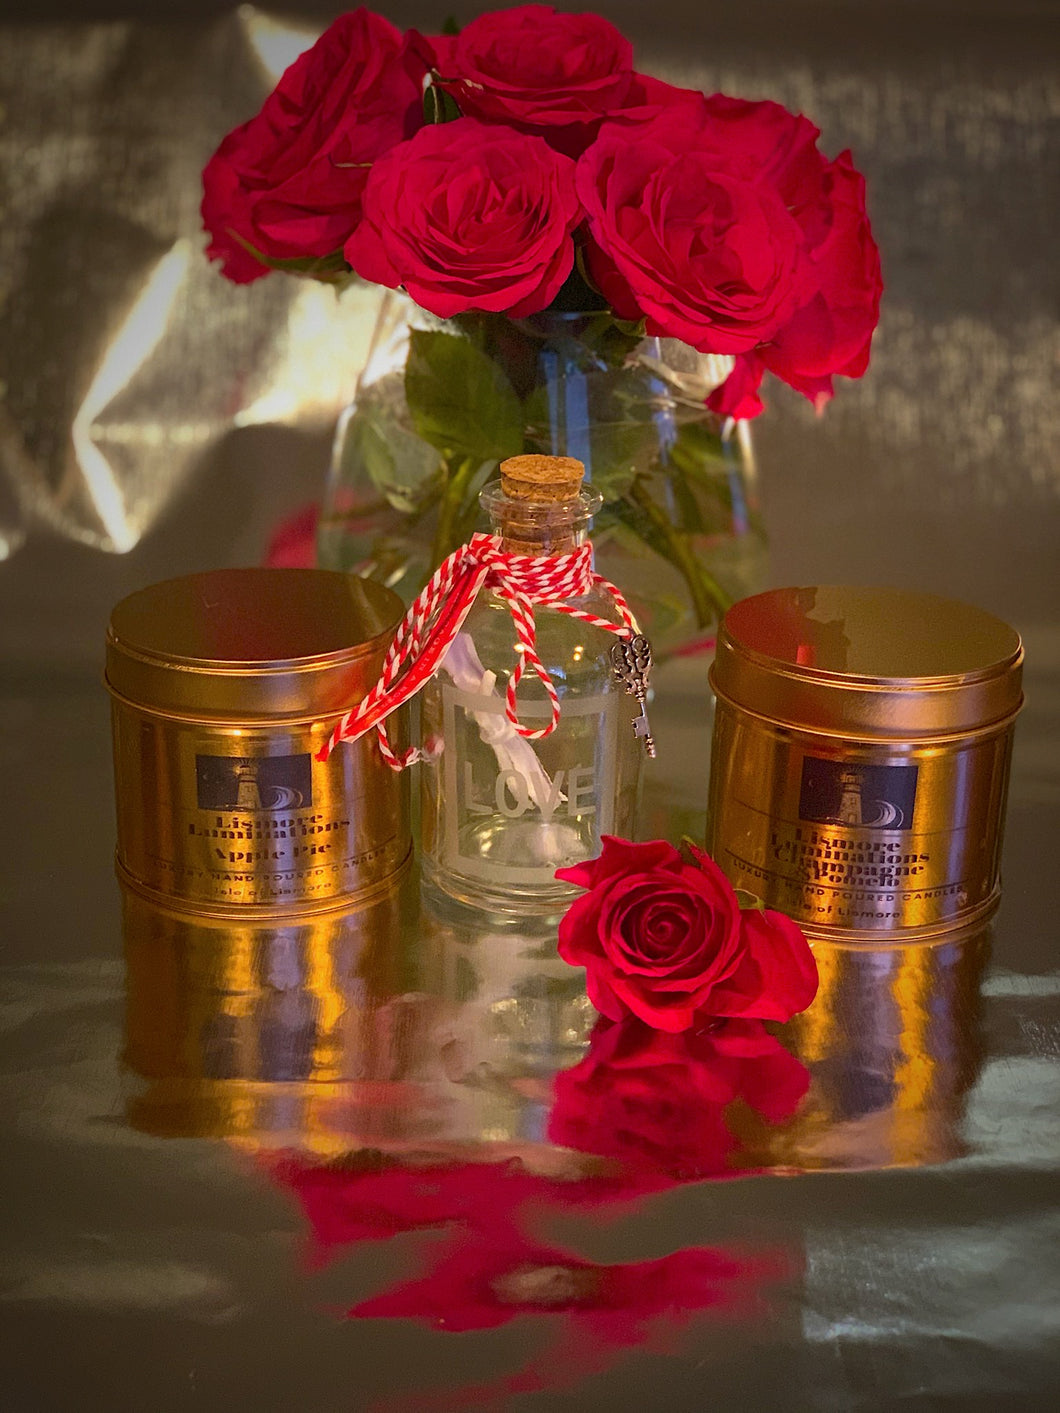 Ultimate Valentines Gift - 2 x candles & glass bottle